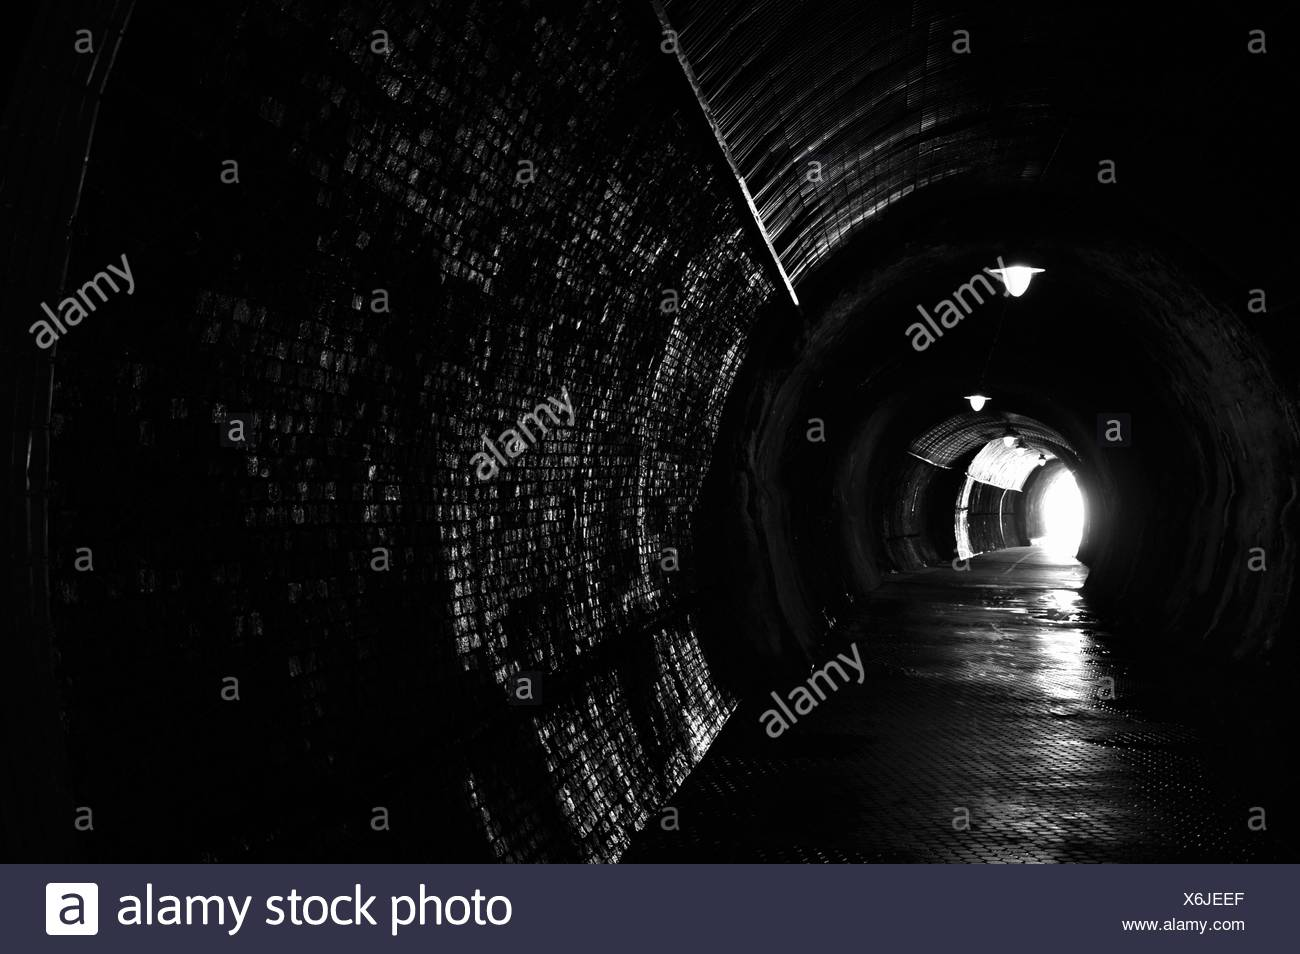 Light At End Of Tunnel Stock Photo